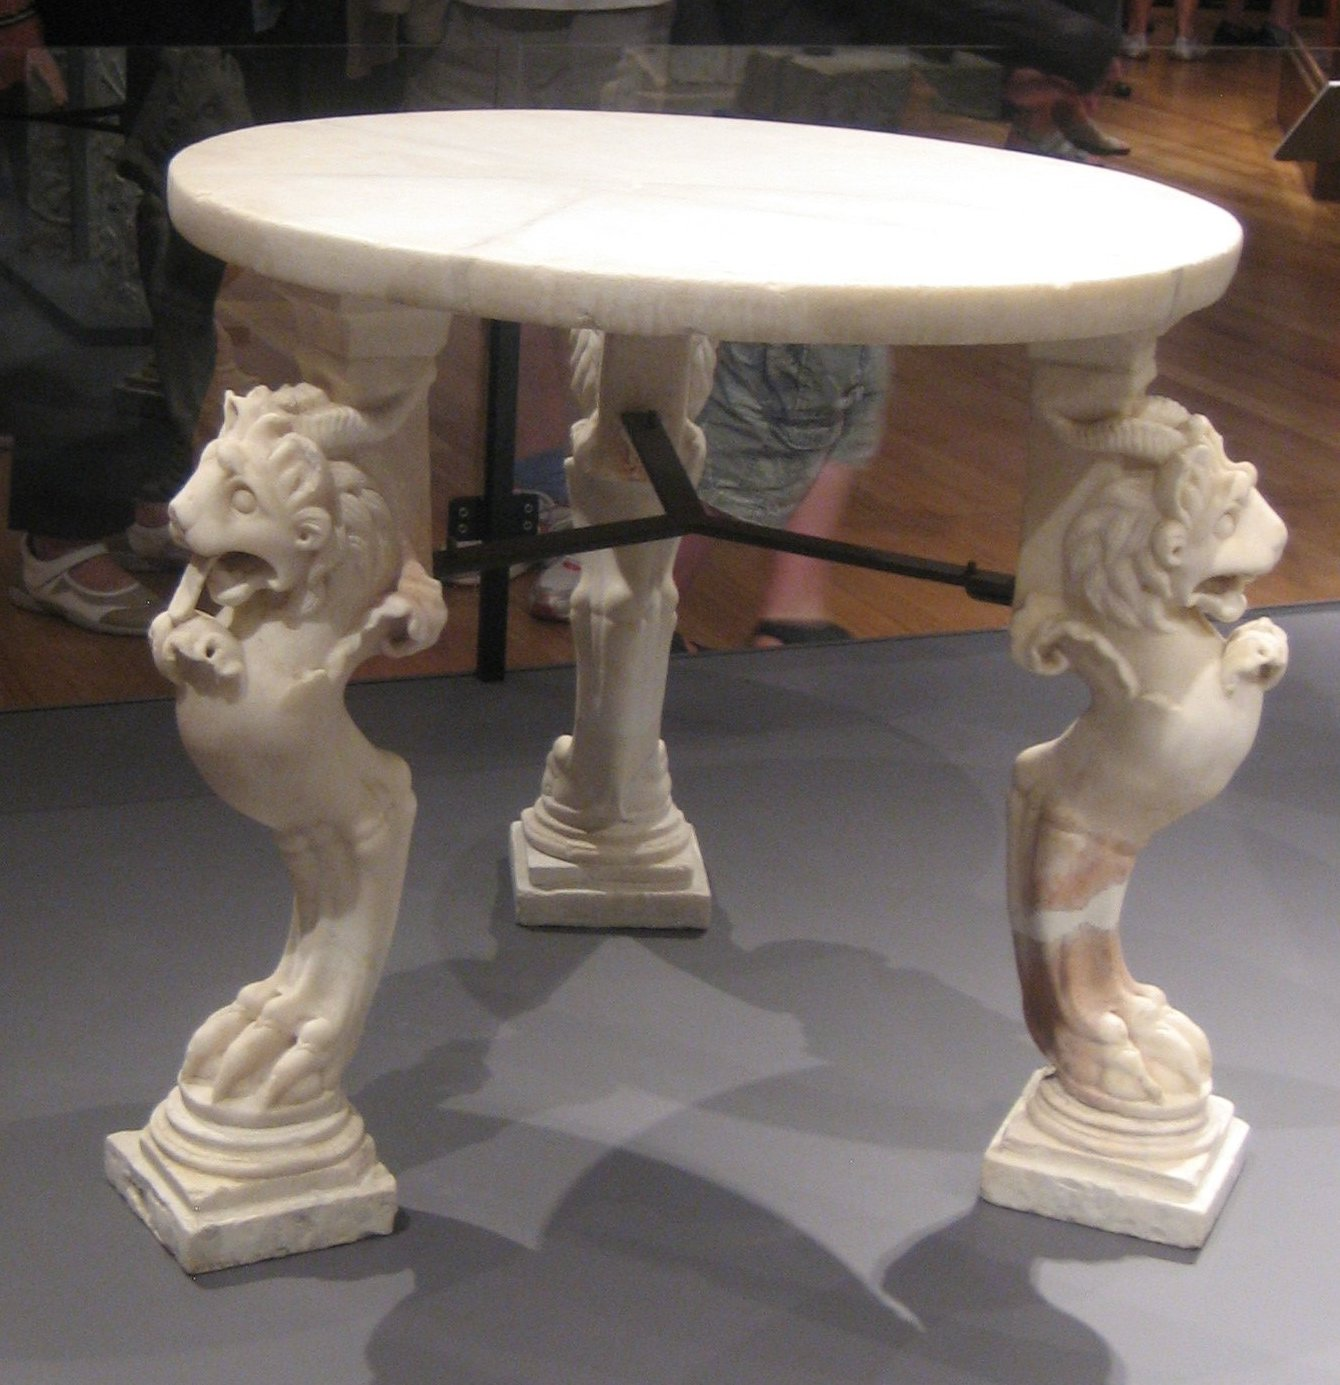 Marble Table From Pompeii Jpg Wikimedia Commons File Marble Table From